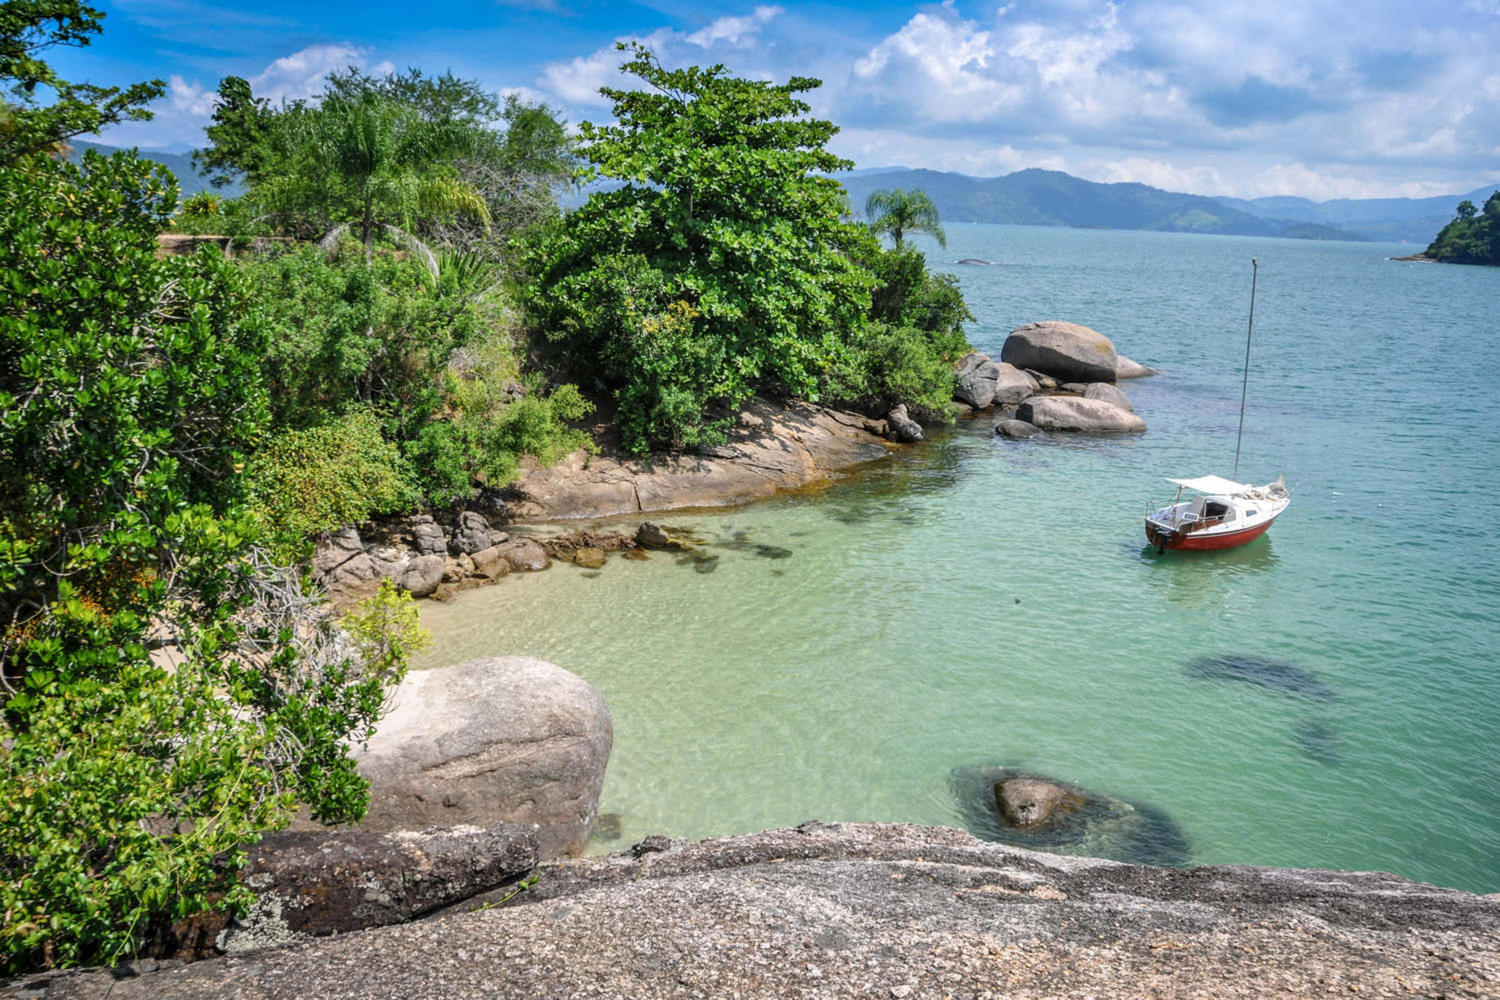 Sailing Paraty's area on a perfect sunny day